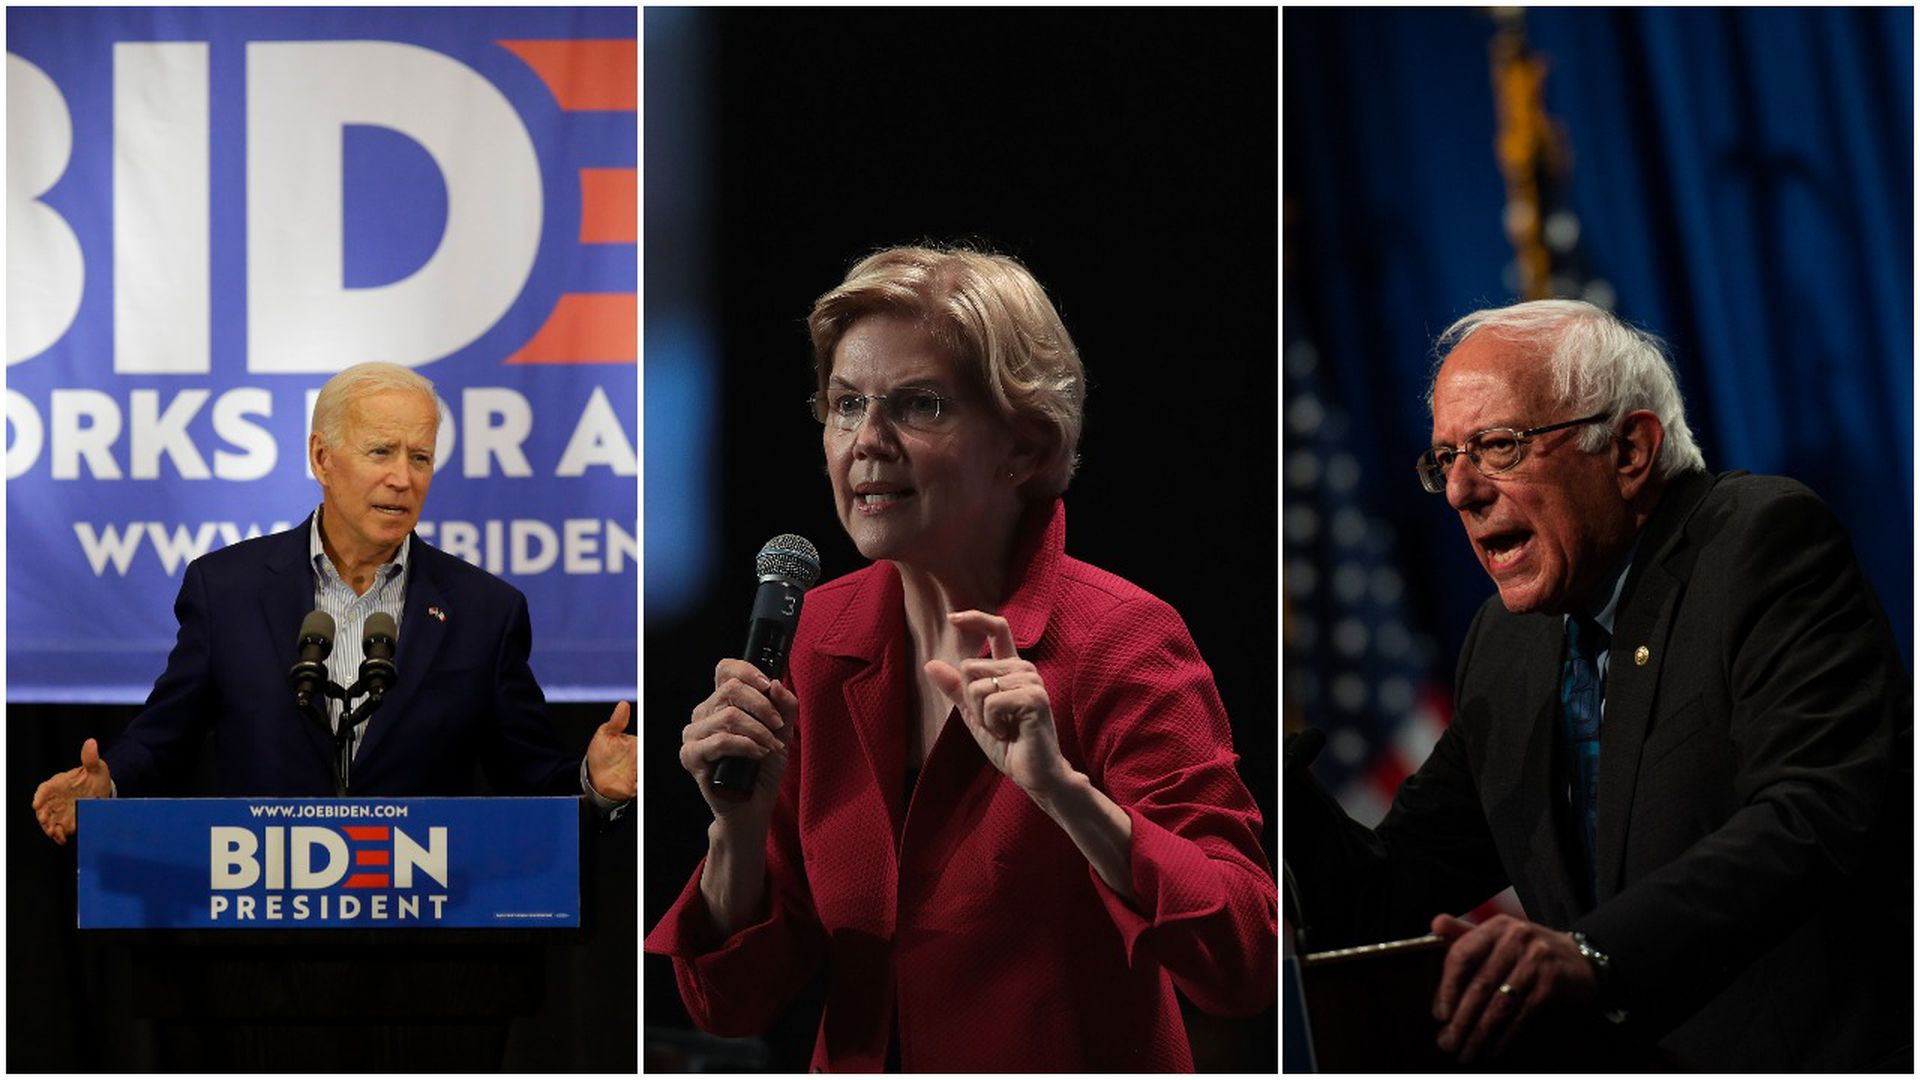 What 2020 Democrats are saying about economic inequality